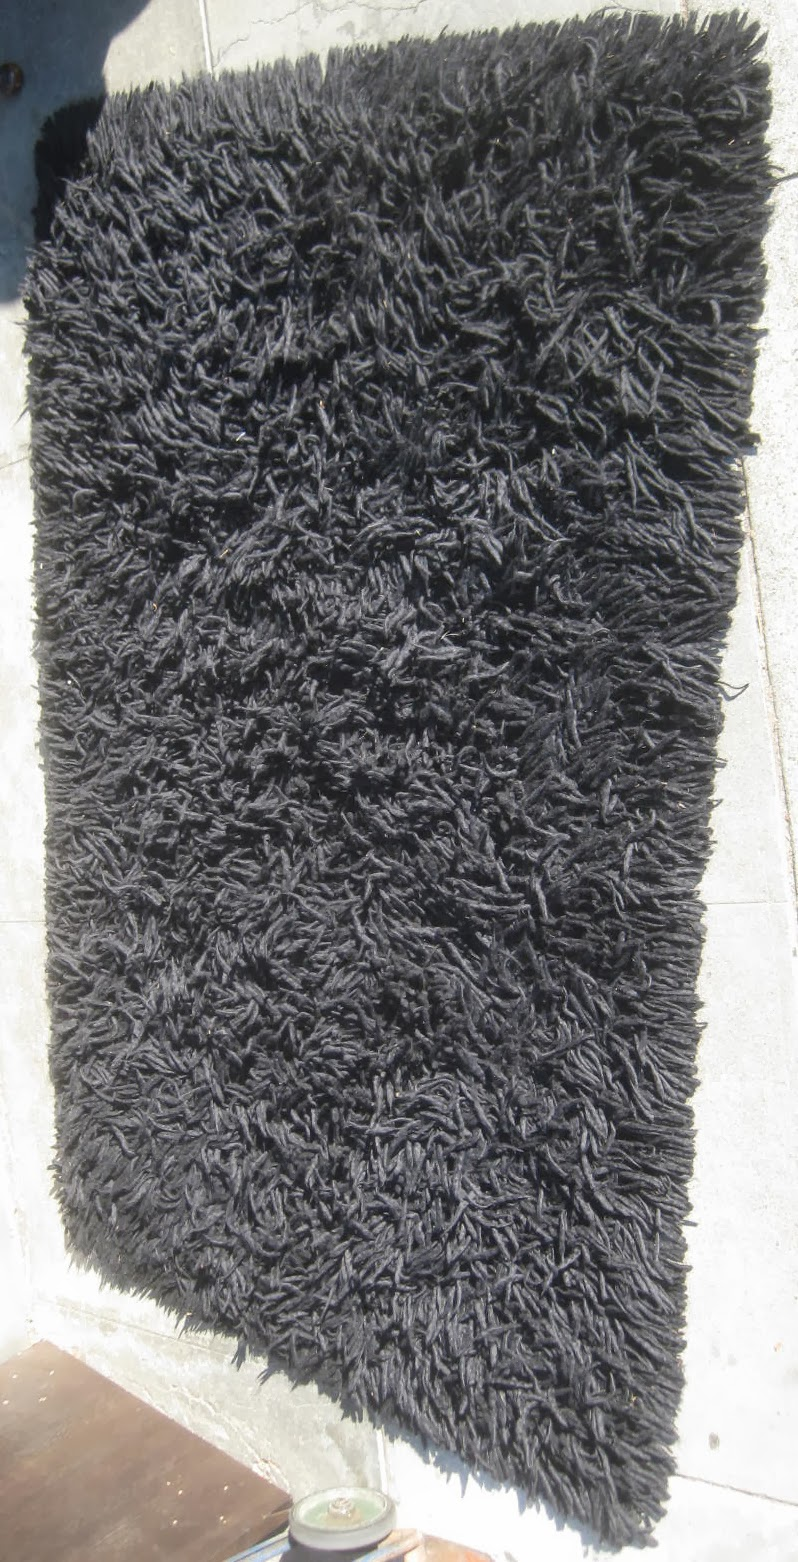 Uhuru Furniture Collectibles Sold Black Shag 5 X 8